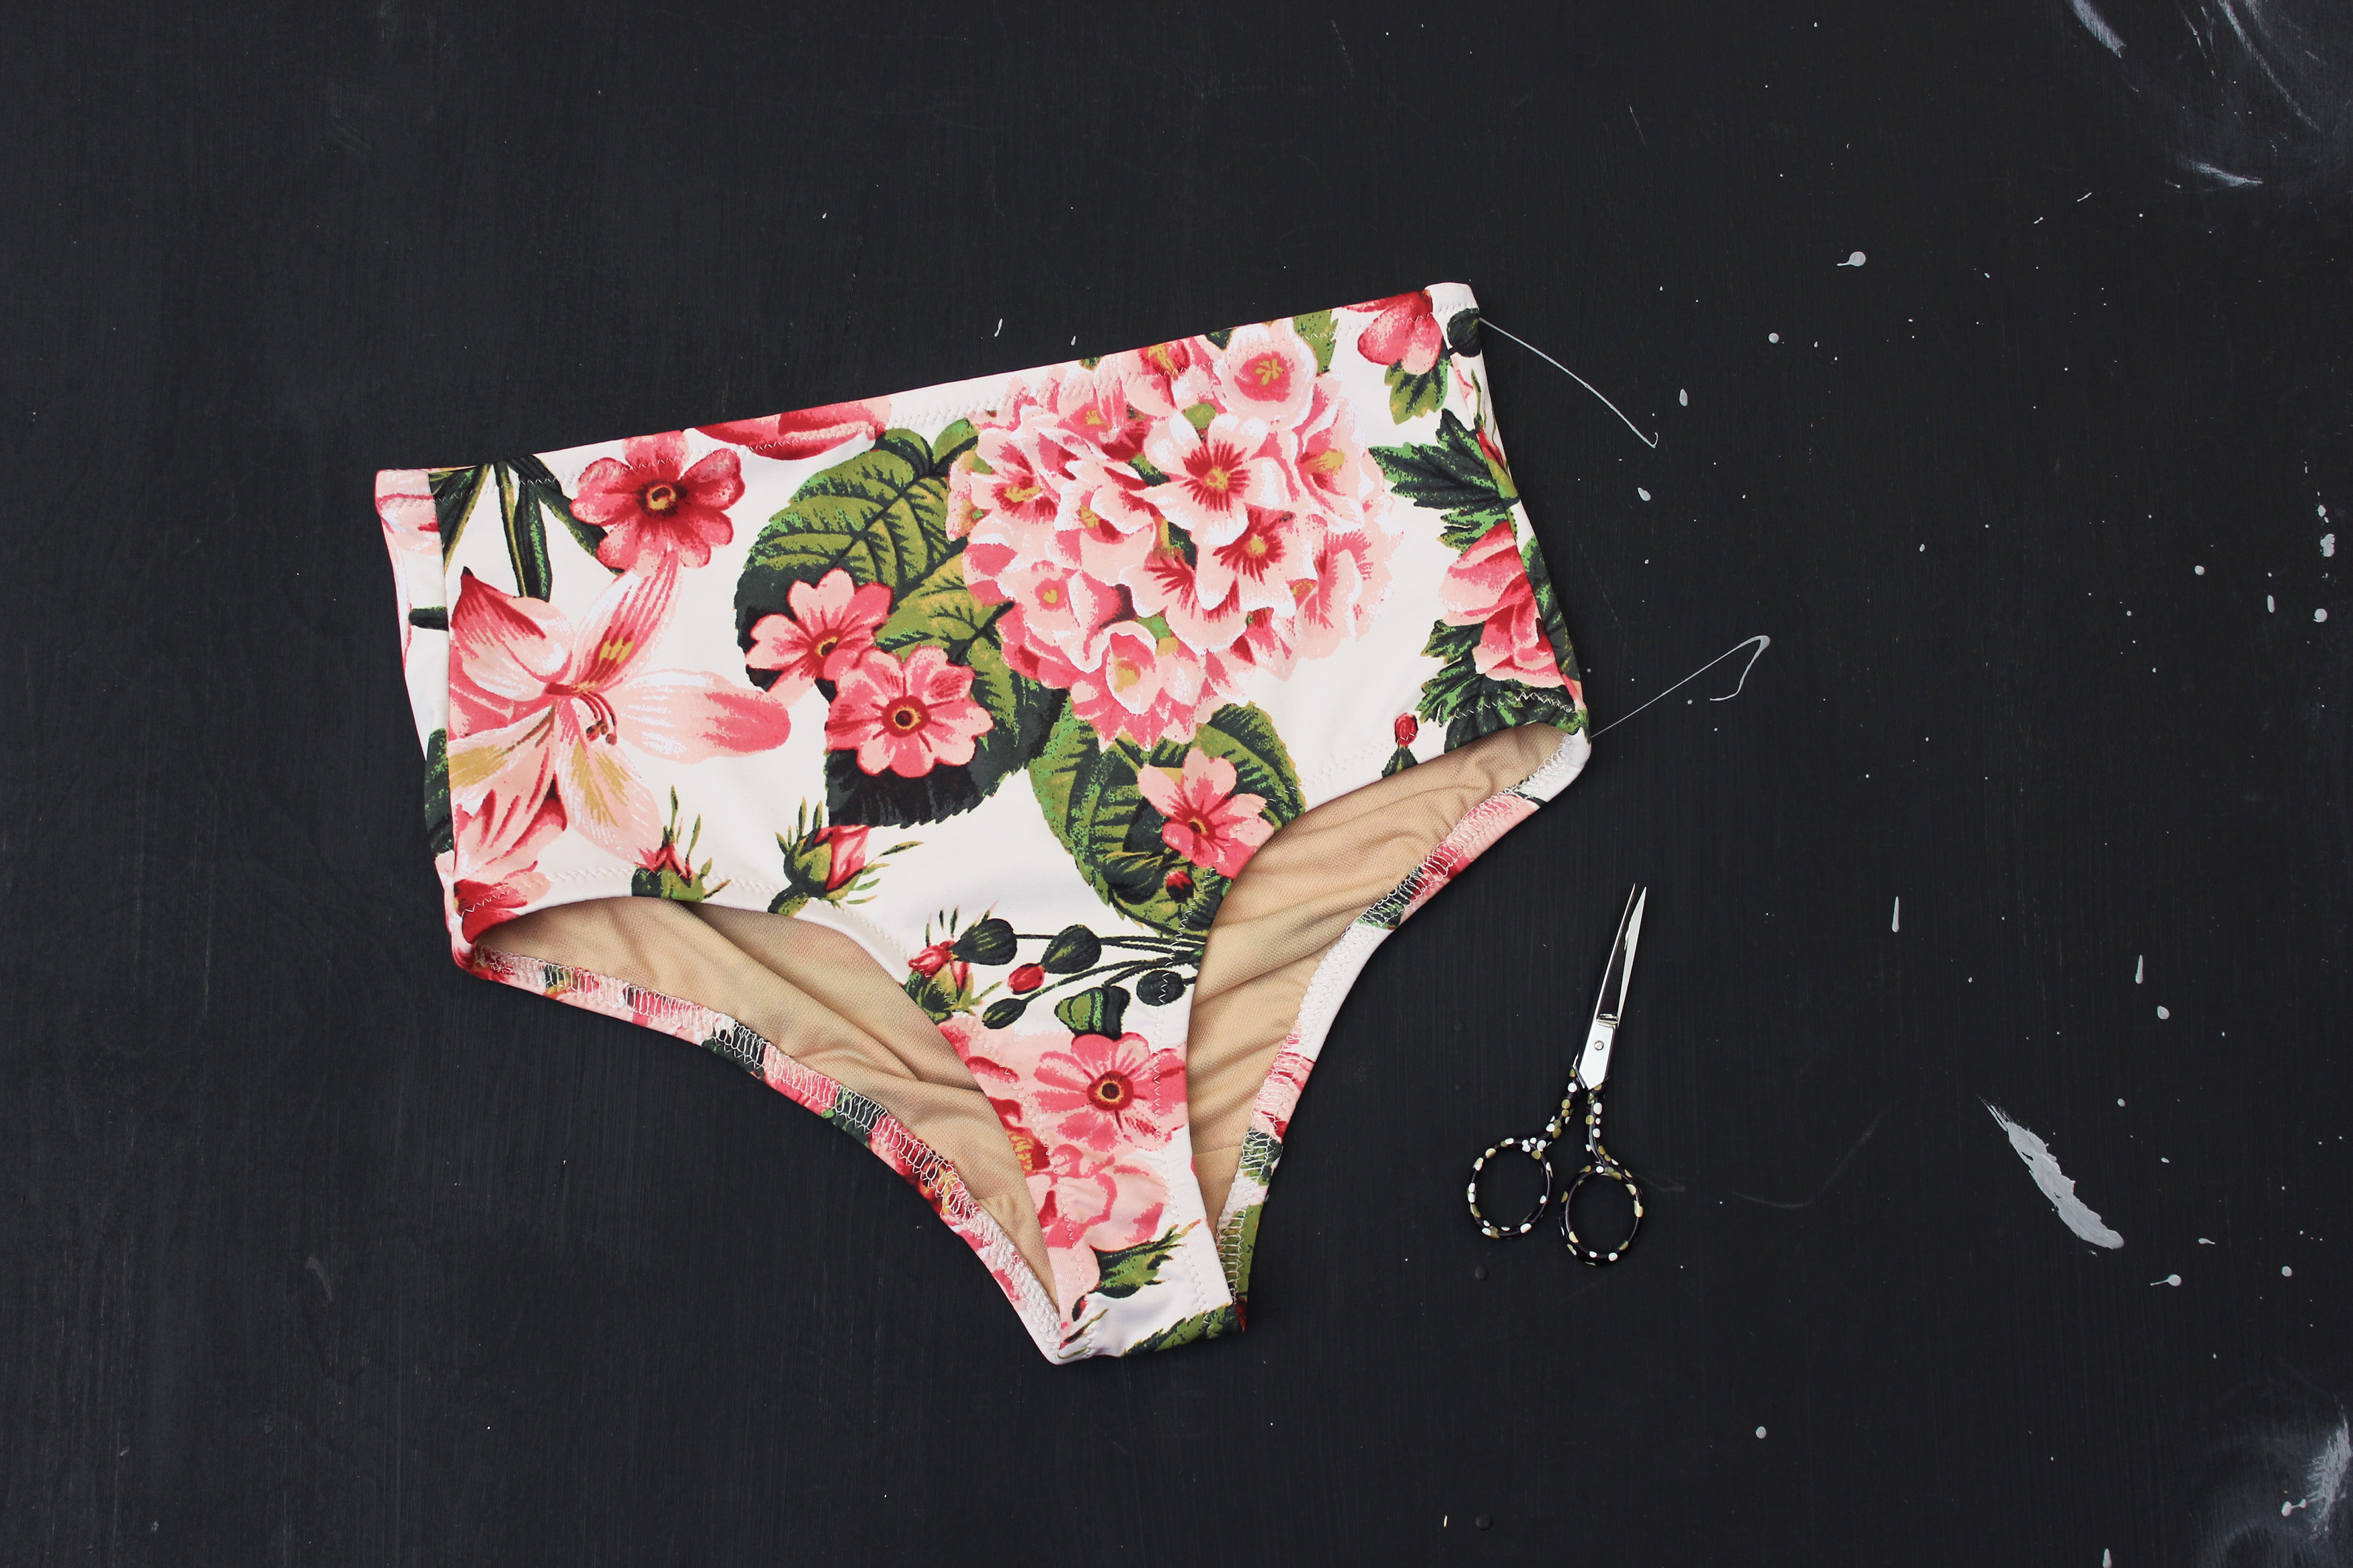 Floral Noelle Swimwear Panty Bottom Tailor Made Shop